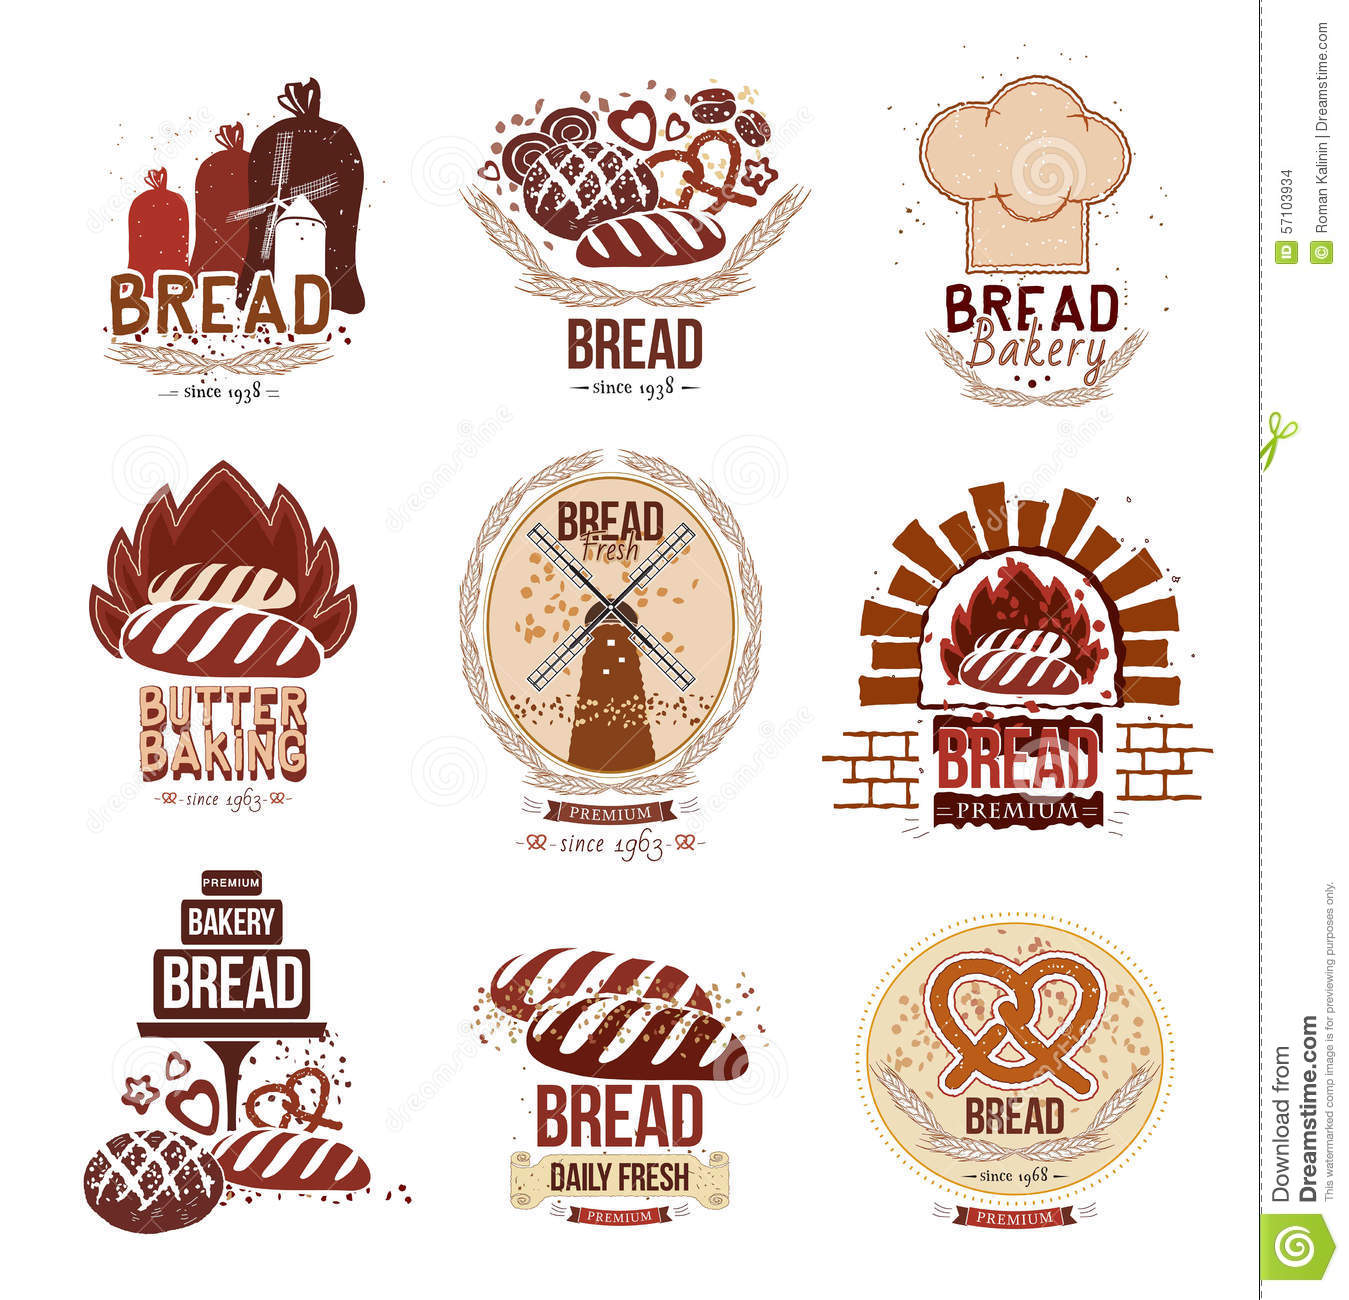 Oven Baking Element >> Set Of Retro Vector Bakery Logos And Bread. Stock Vector - Image: 57103934